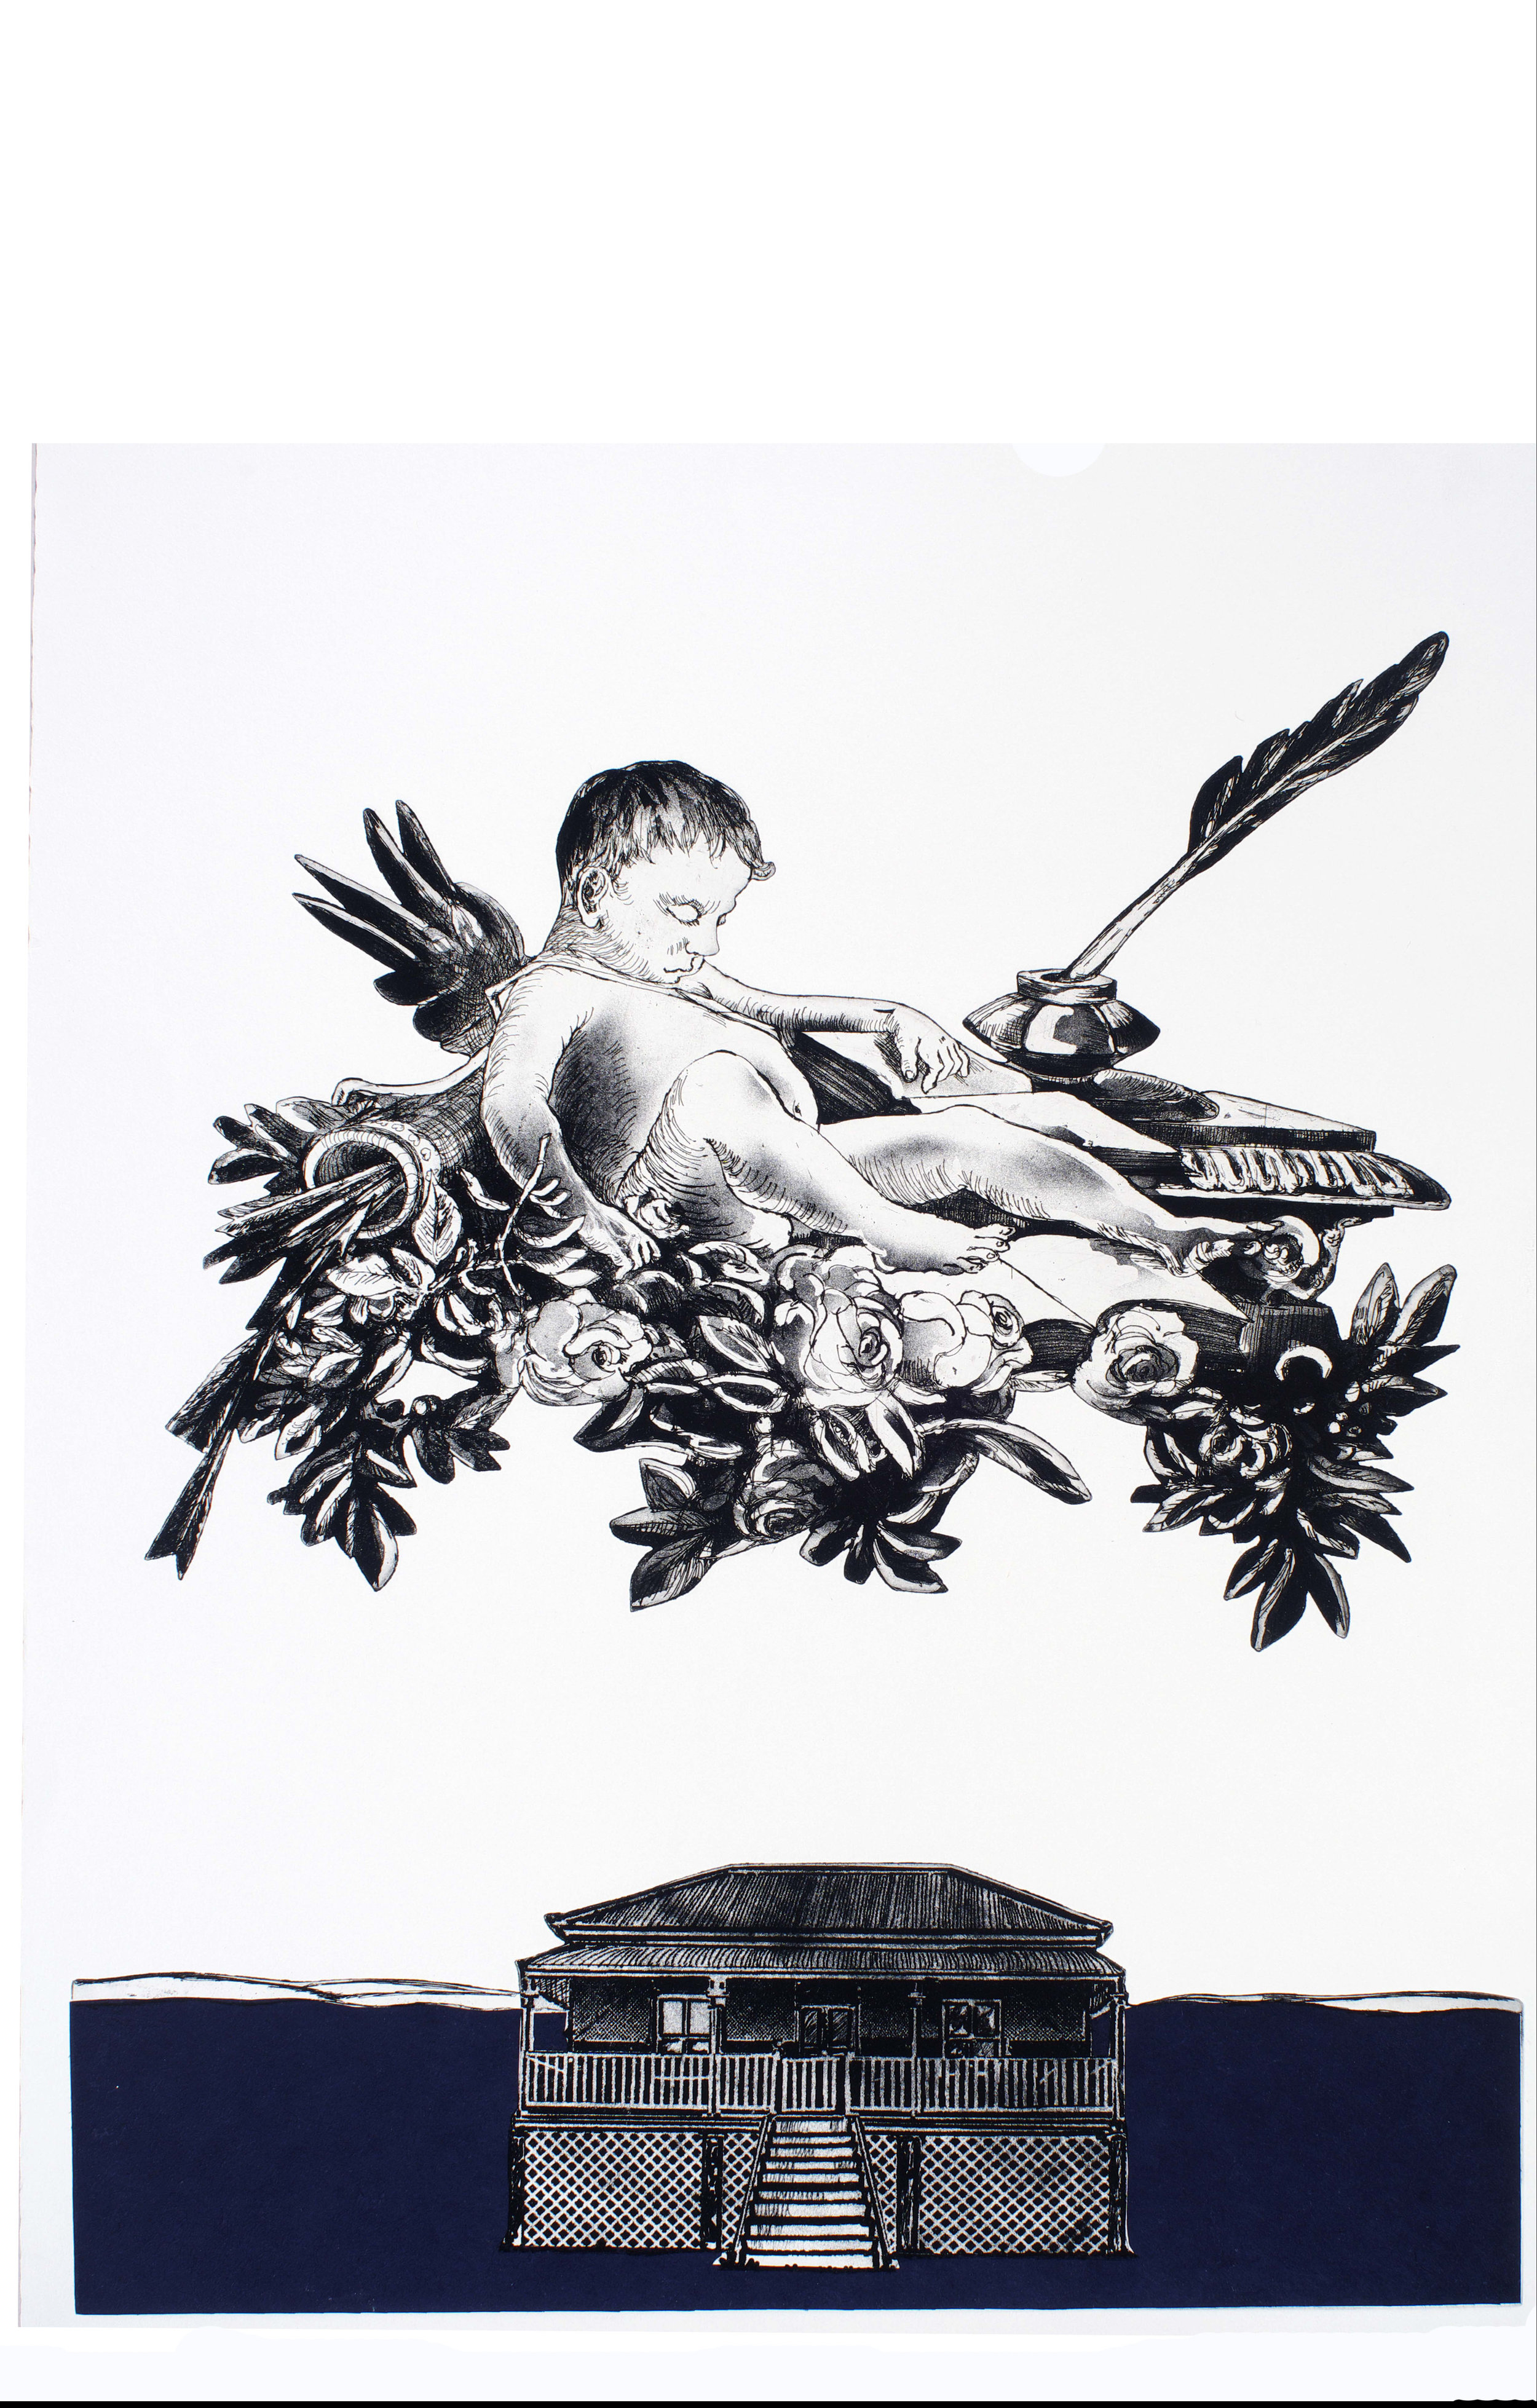 Cupid Over Queenslander I   etching, aquatint and chine collé (shaped plates, upper copper and lower zinc) on rag paper. 630 x 490 mm. Artist's Proof, one of two proofs, not editioned